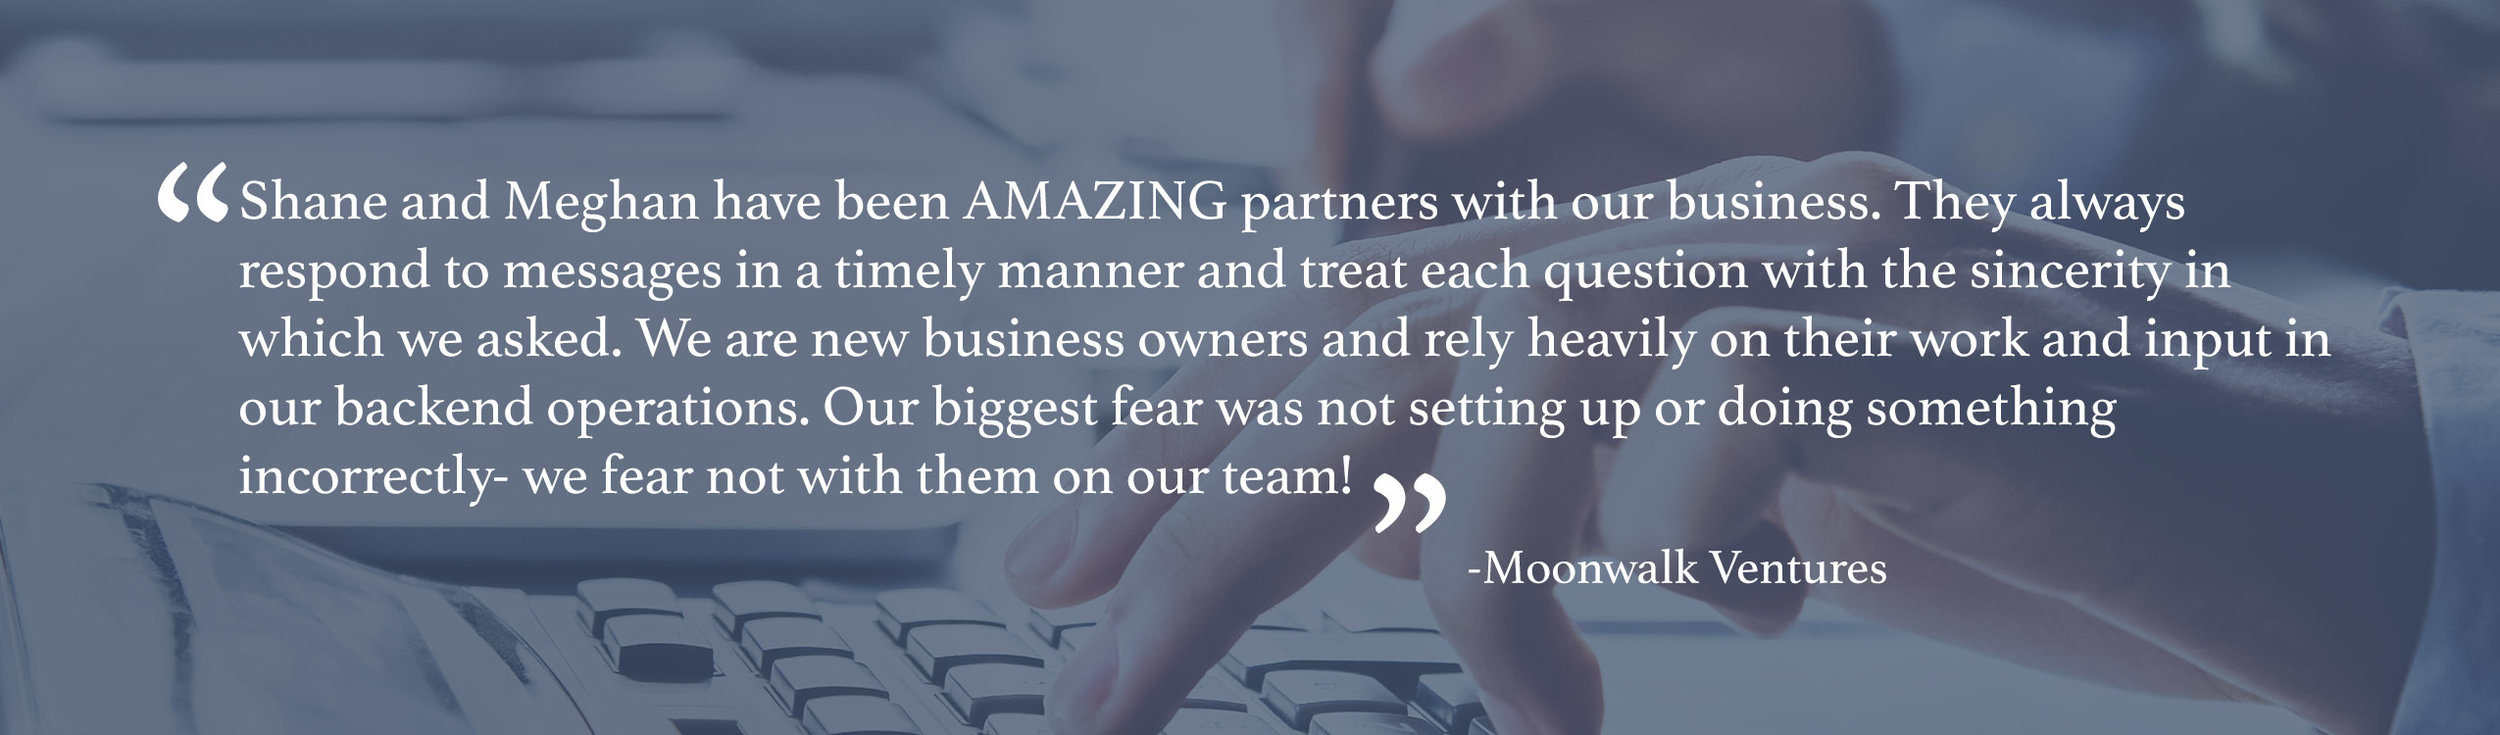 Moonwalk Ventures Testimonial.jpg